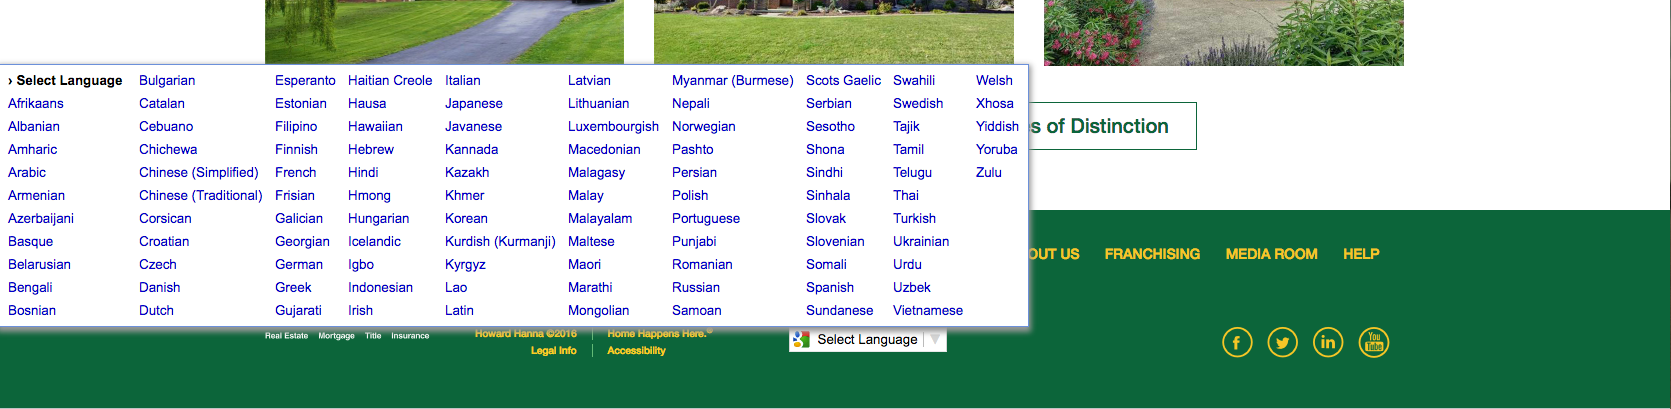 Screen shot of HowardHanna.com homepage language menu.